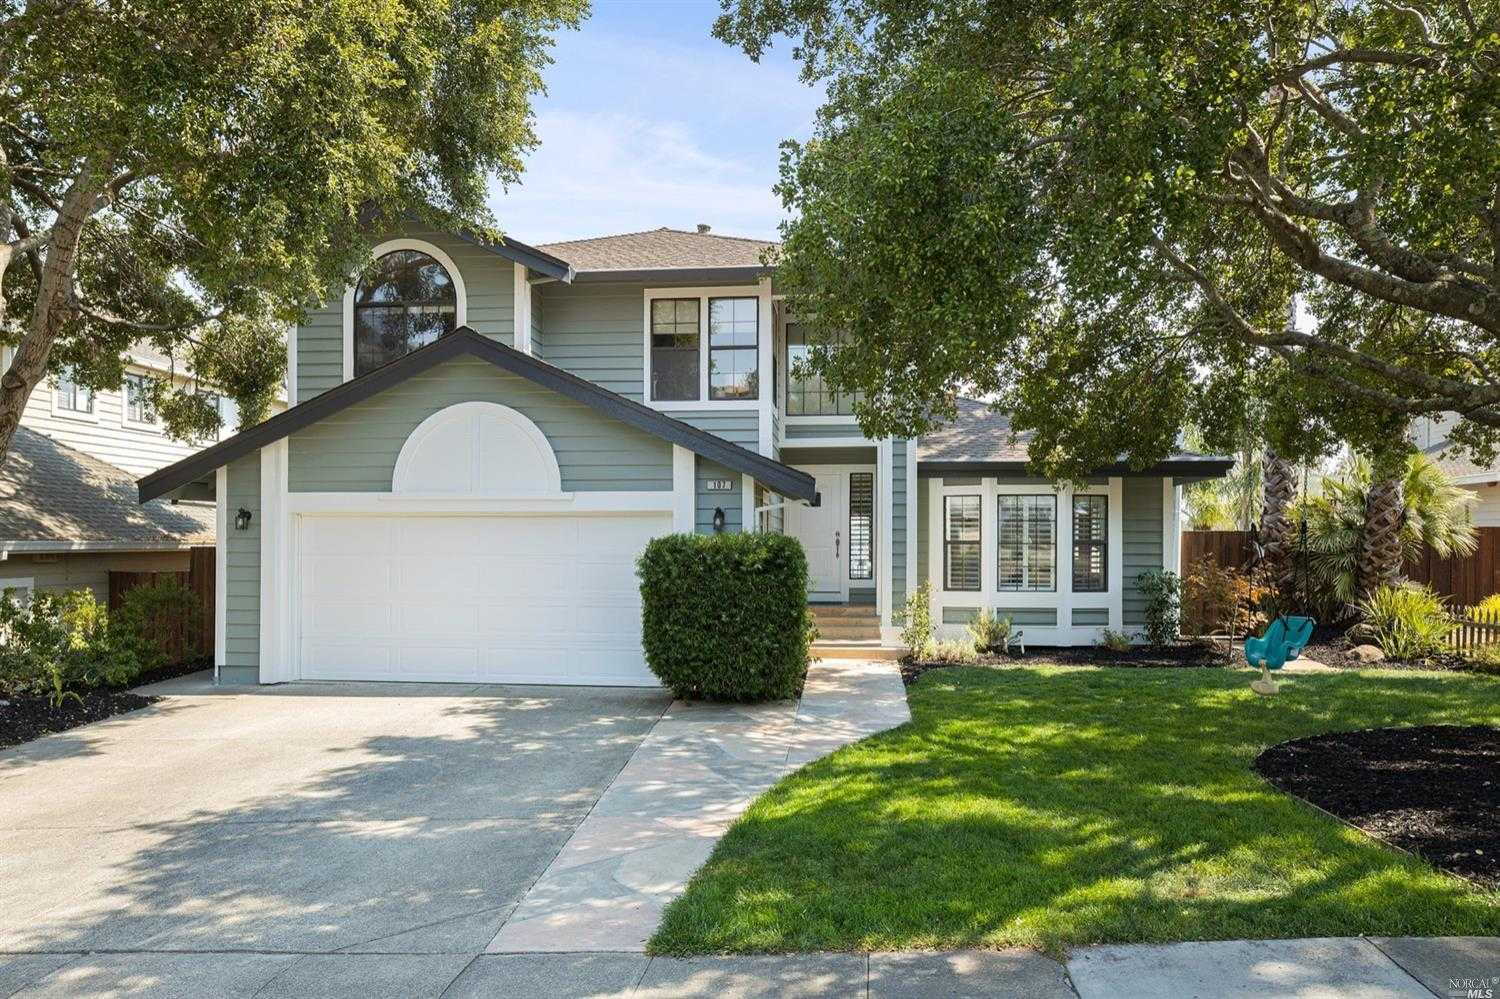 $1,225,000 - 4Br/3Ba -  for Sale in Novato